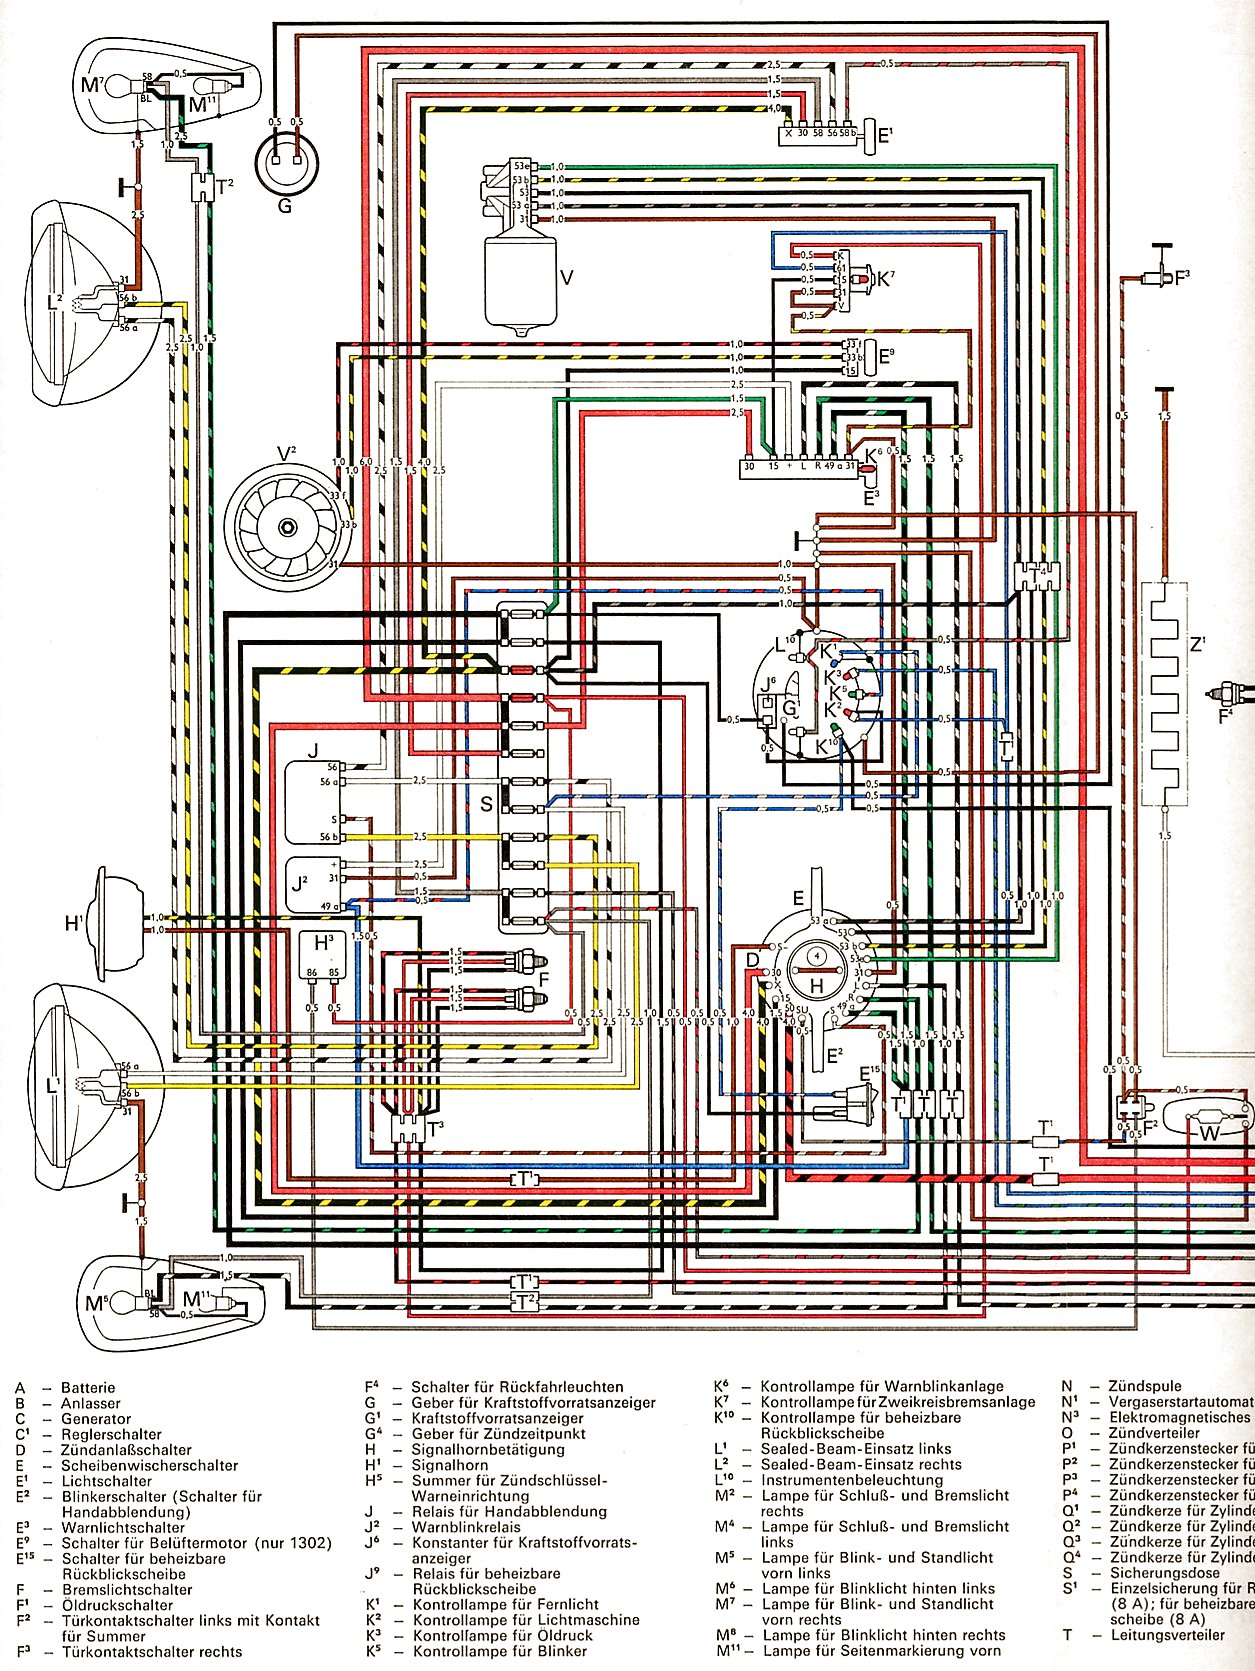 1300_and_1302_USA_from_August_1971 1 wiring diagram shoptalkforums com 1970 vw beetle wiring diagram at edmiracle.co